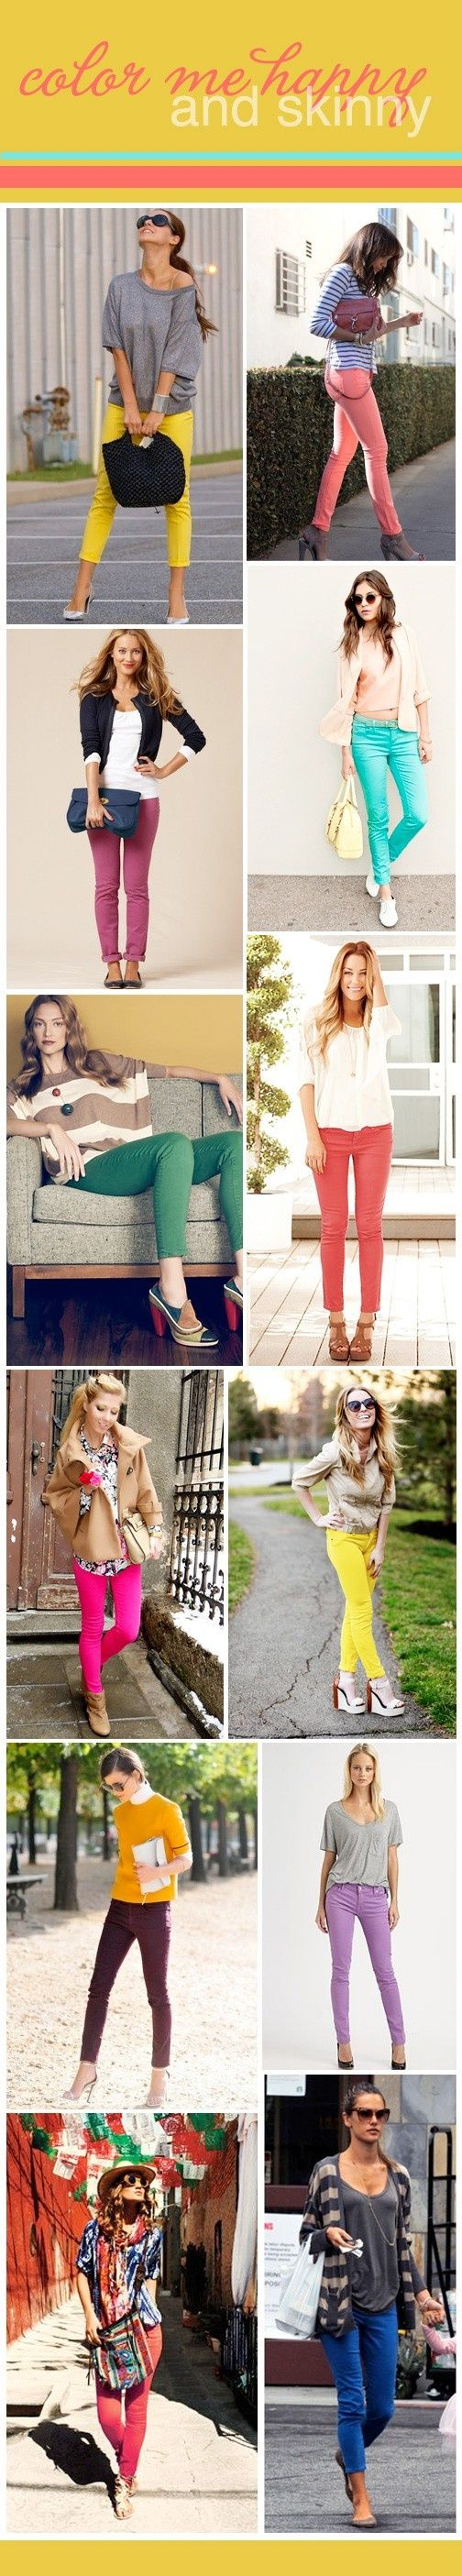 skinny colorful jeans - think I'll wear them now before they go out of style - cute ideas!...